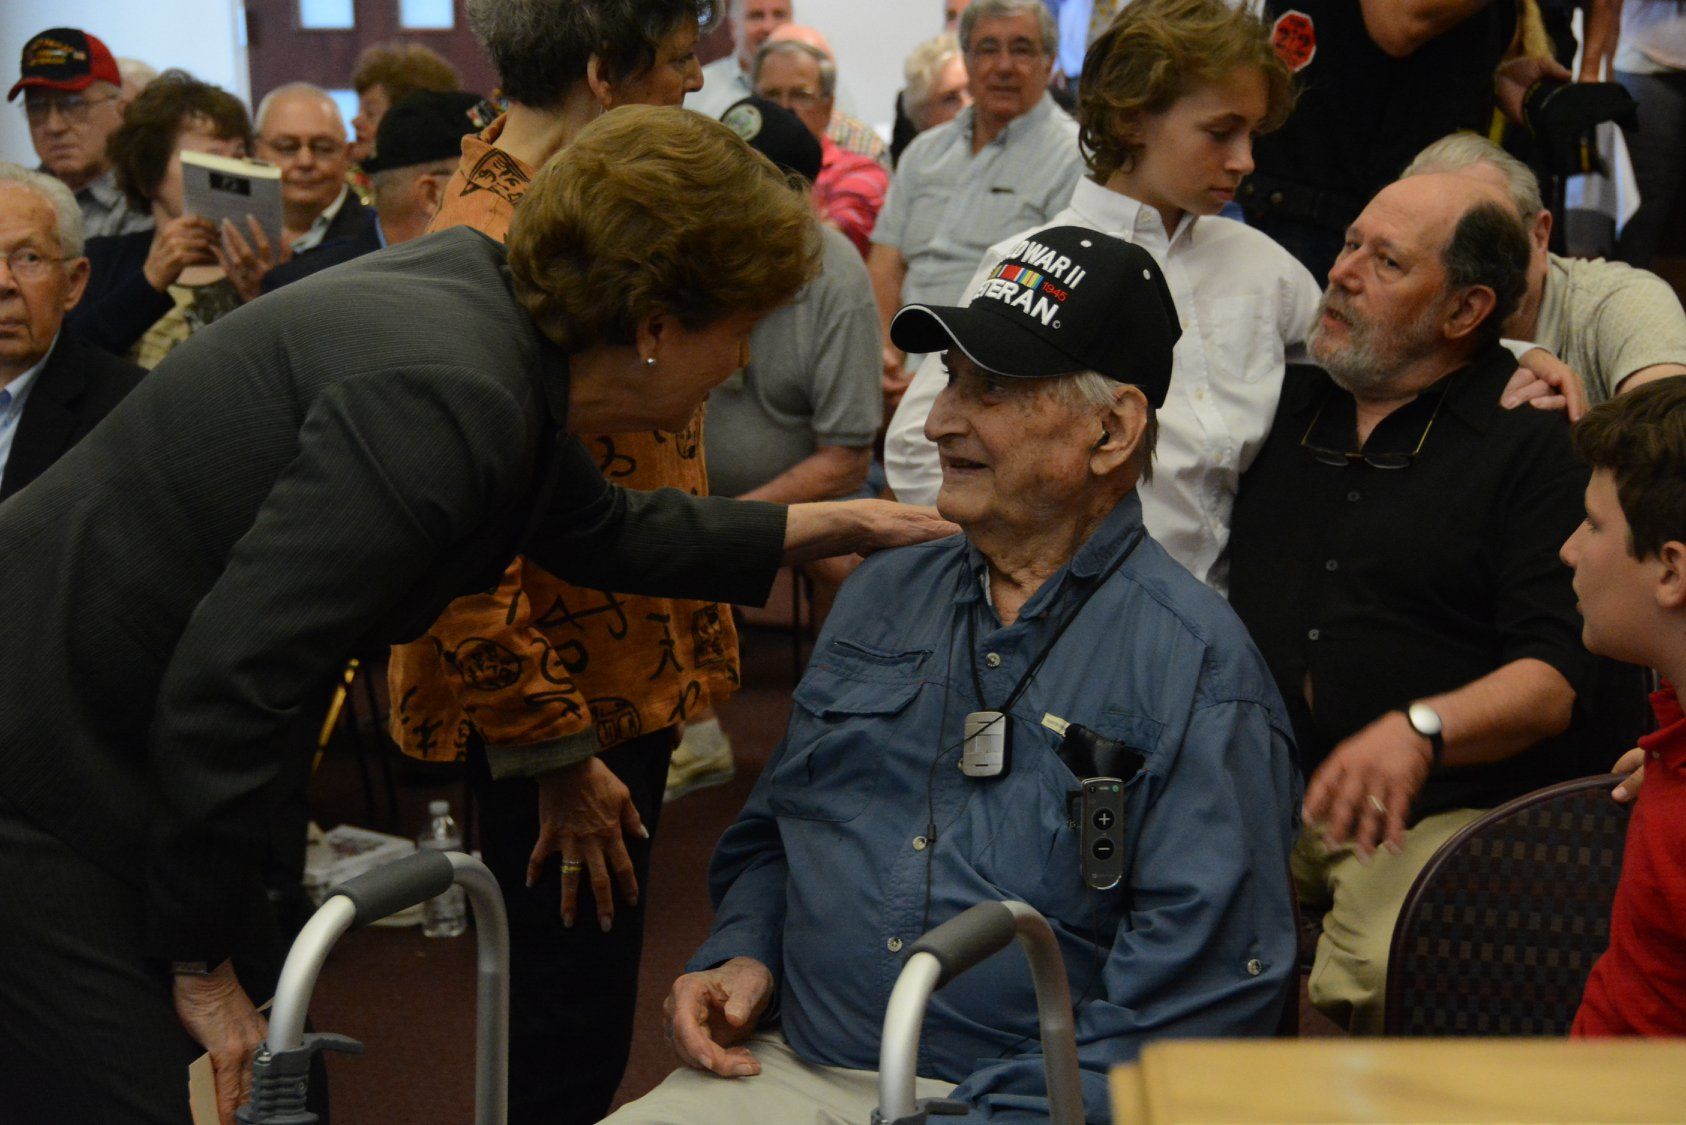 Presenting Captain Martin Gelb with the Congressional Gold Medal for his service during World War II